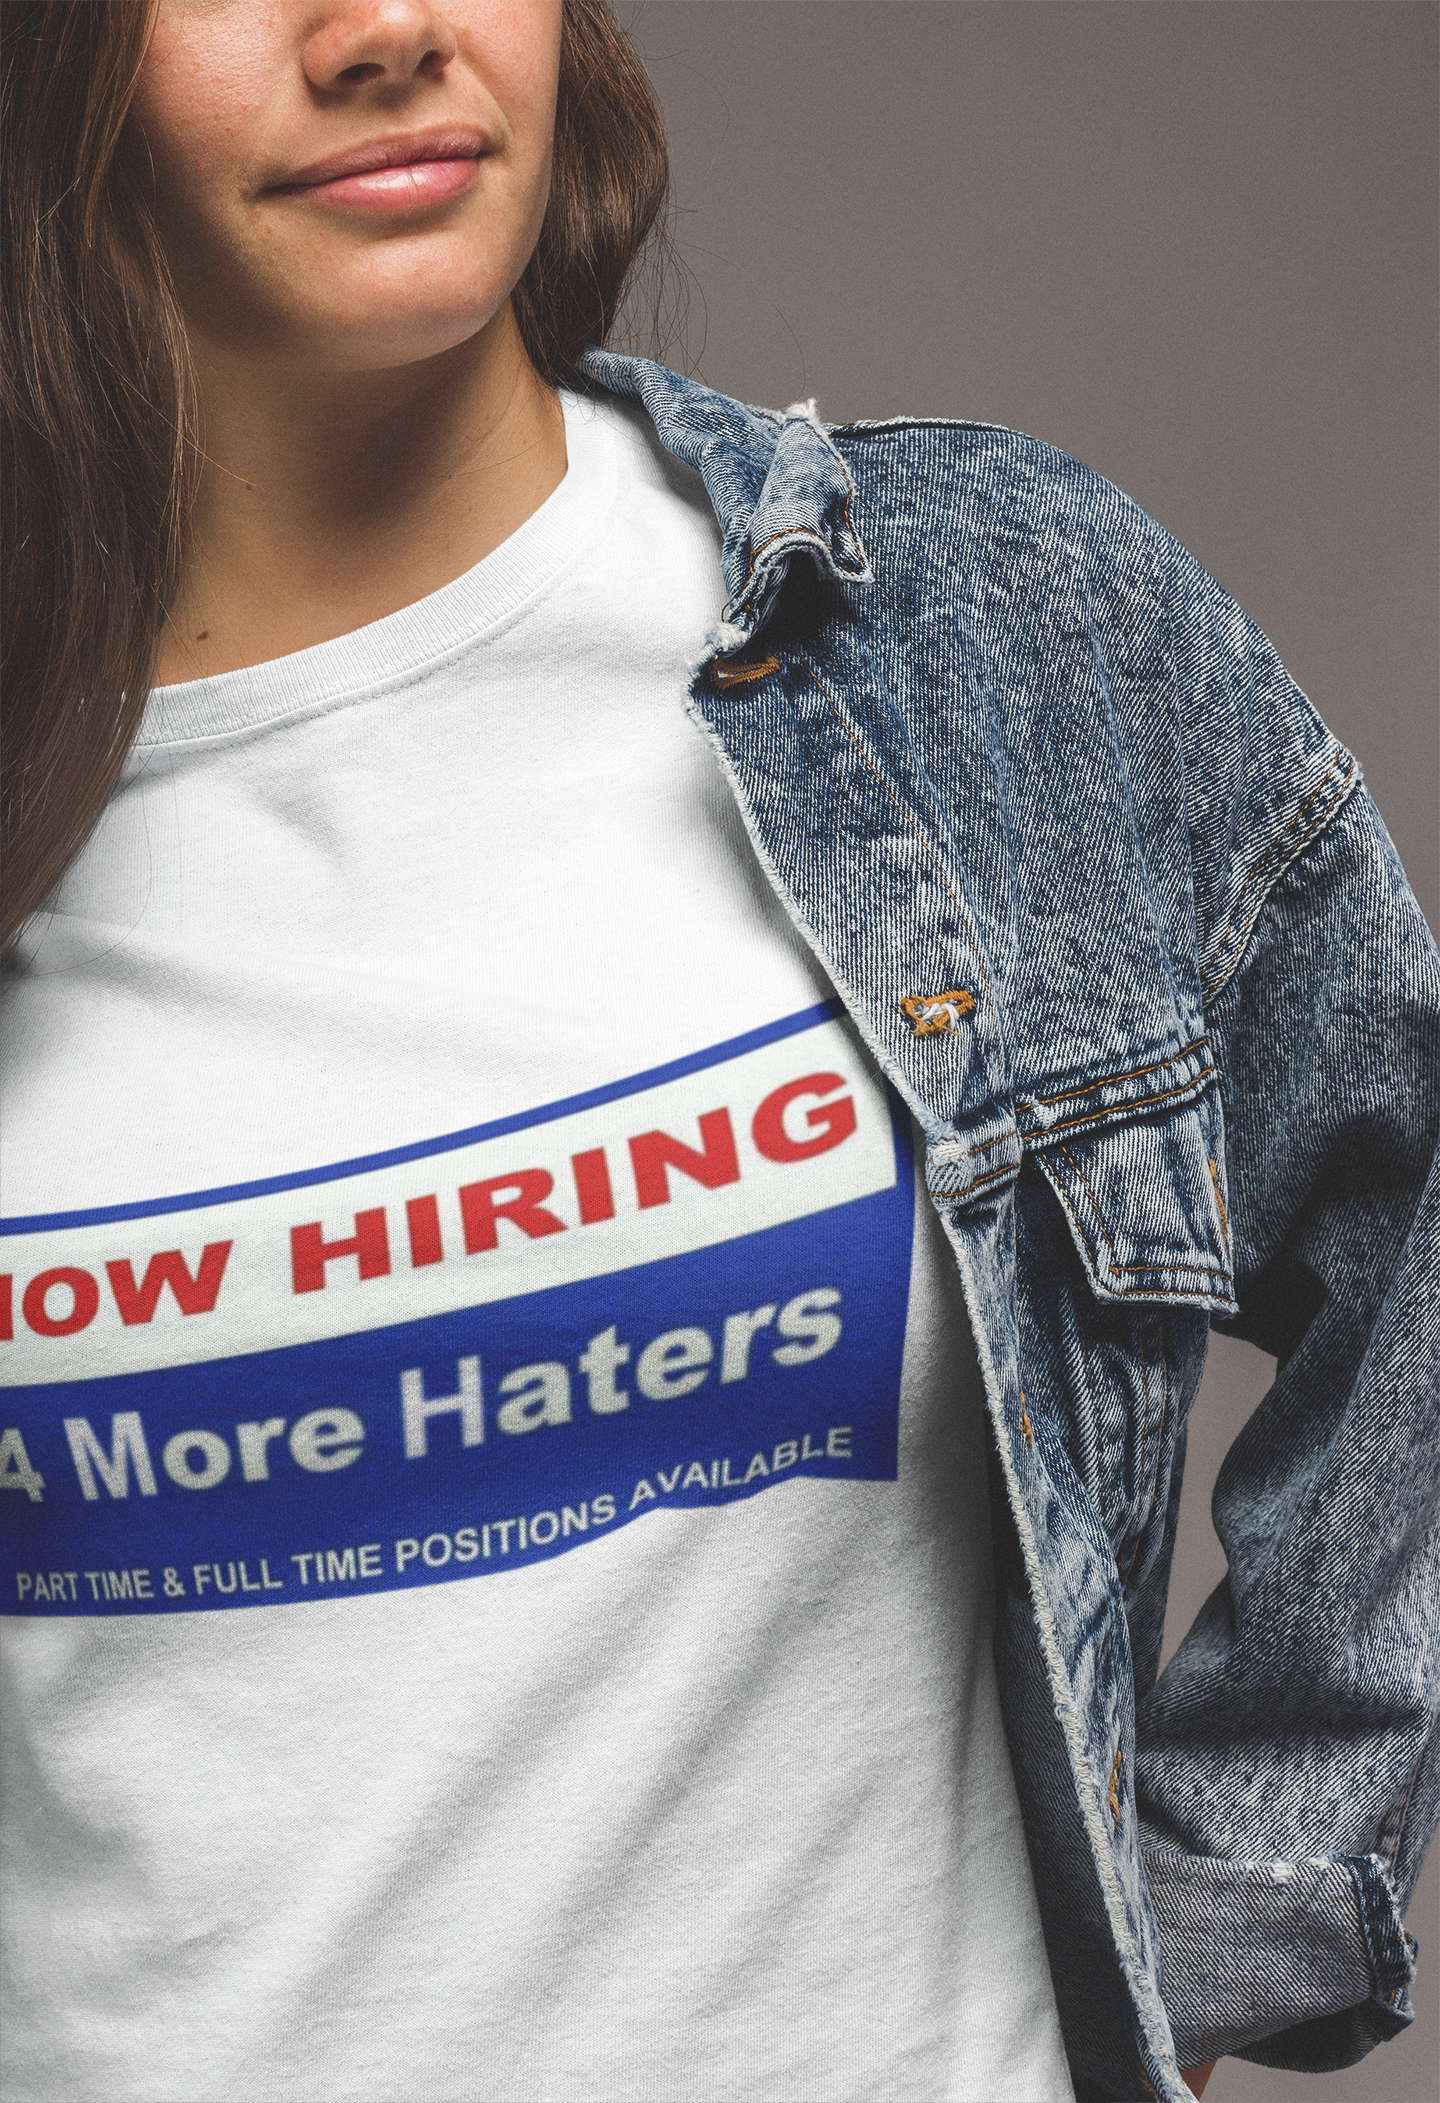 Now Hiring T-Shirt